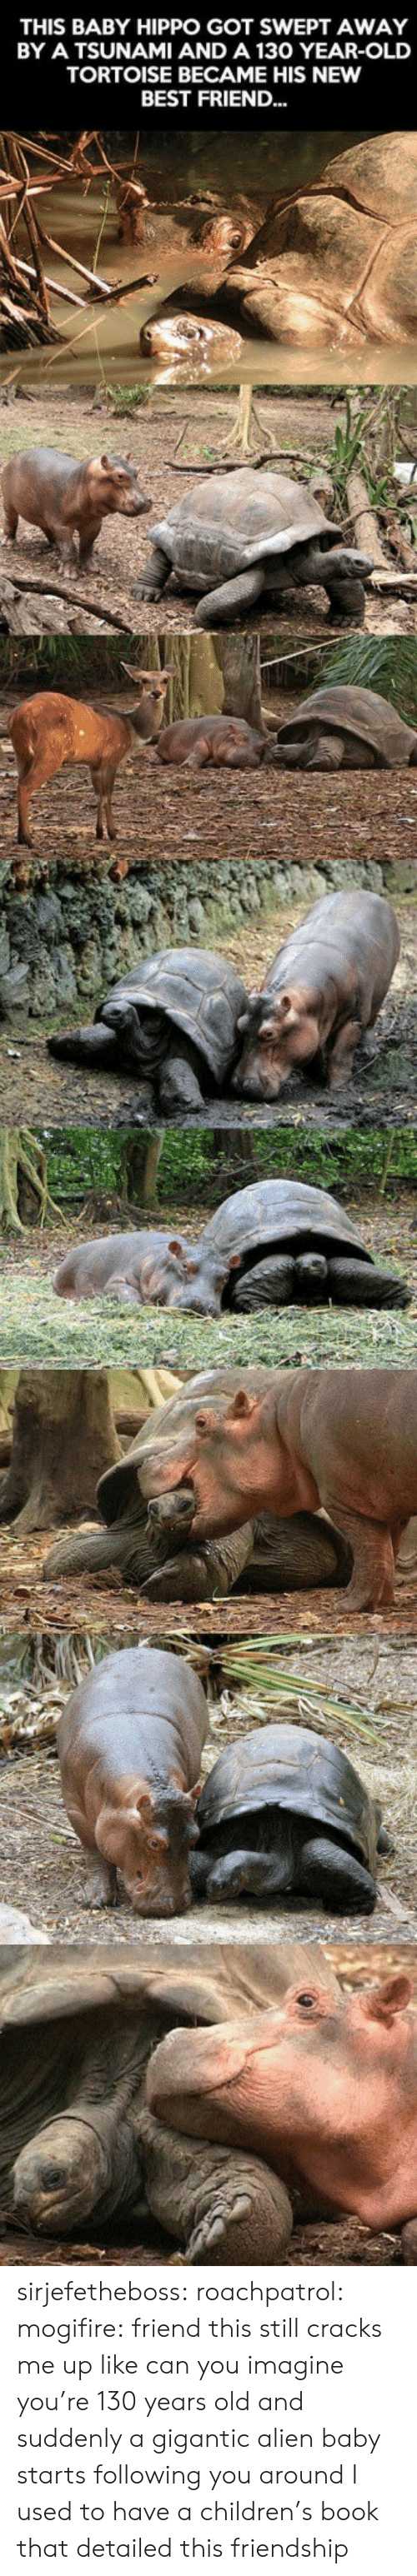 Alien Baby: THIS BABY HIPPO GOT SWEPT AWAY  BY A TSUNAMI AND A 130 YEAR-OLD  TORTOISE BECAME HIS NEW  BEST FRIEND... sirjefetheboss:  roachpatrol: mogifire: friend this still cracks me up like can you imagine you're 130 years old and suddenly a gigantic alien baby starts following you around  I used to have a children's book that detailed this friendship